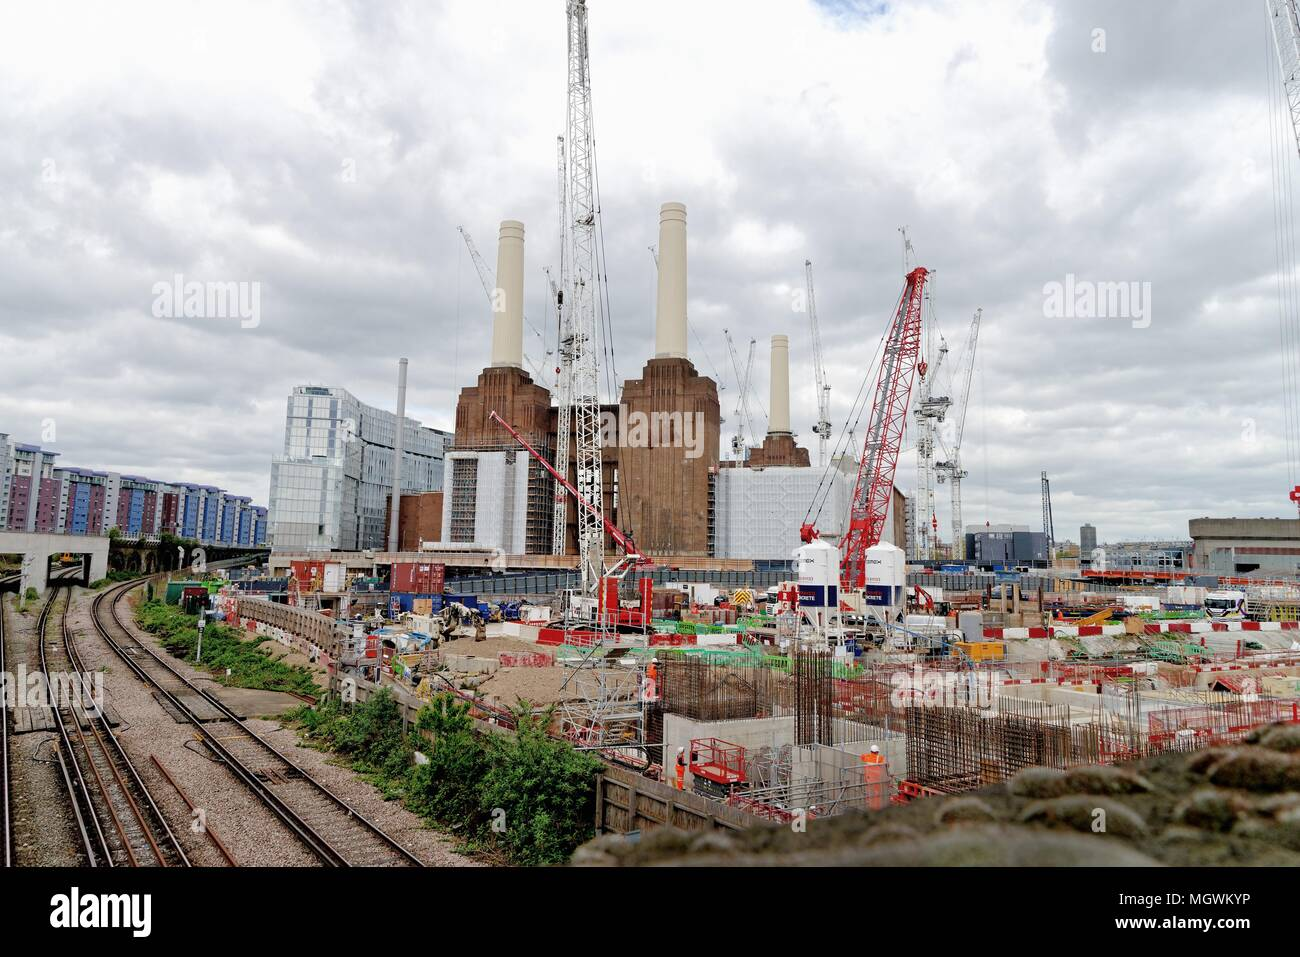 The redevelopment of the Battersea power station at Nine Elms London England UK - Stock Image